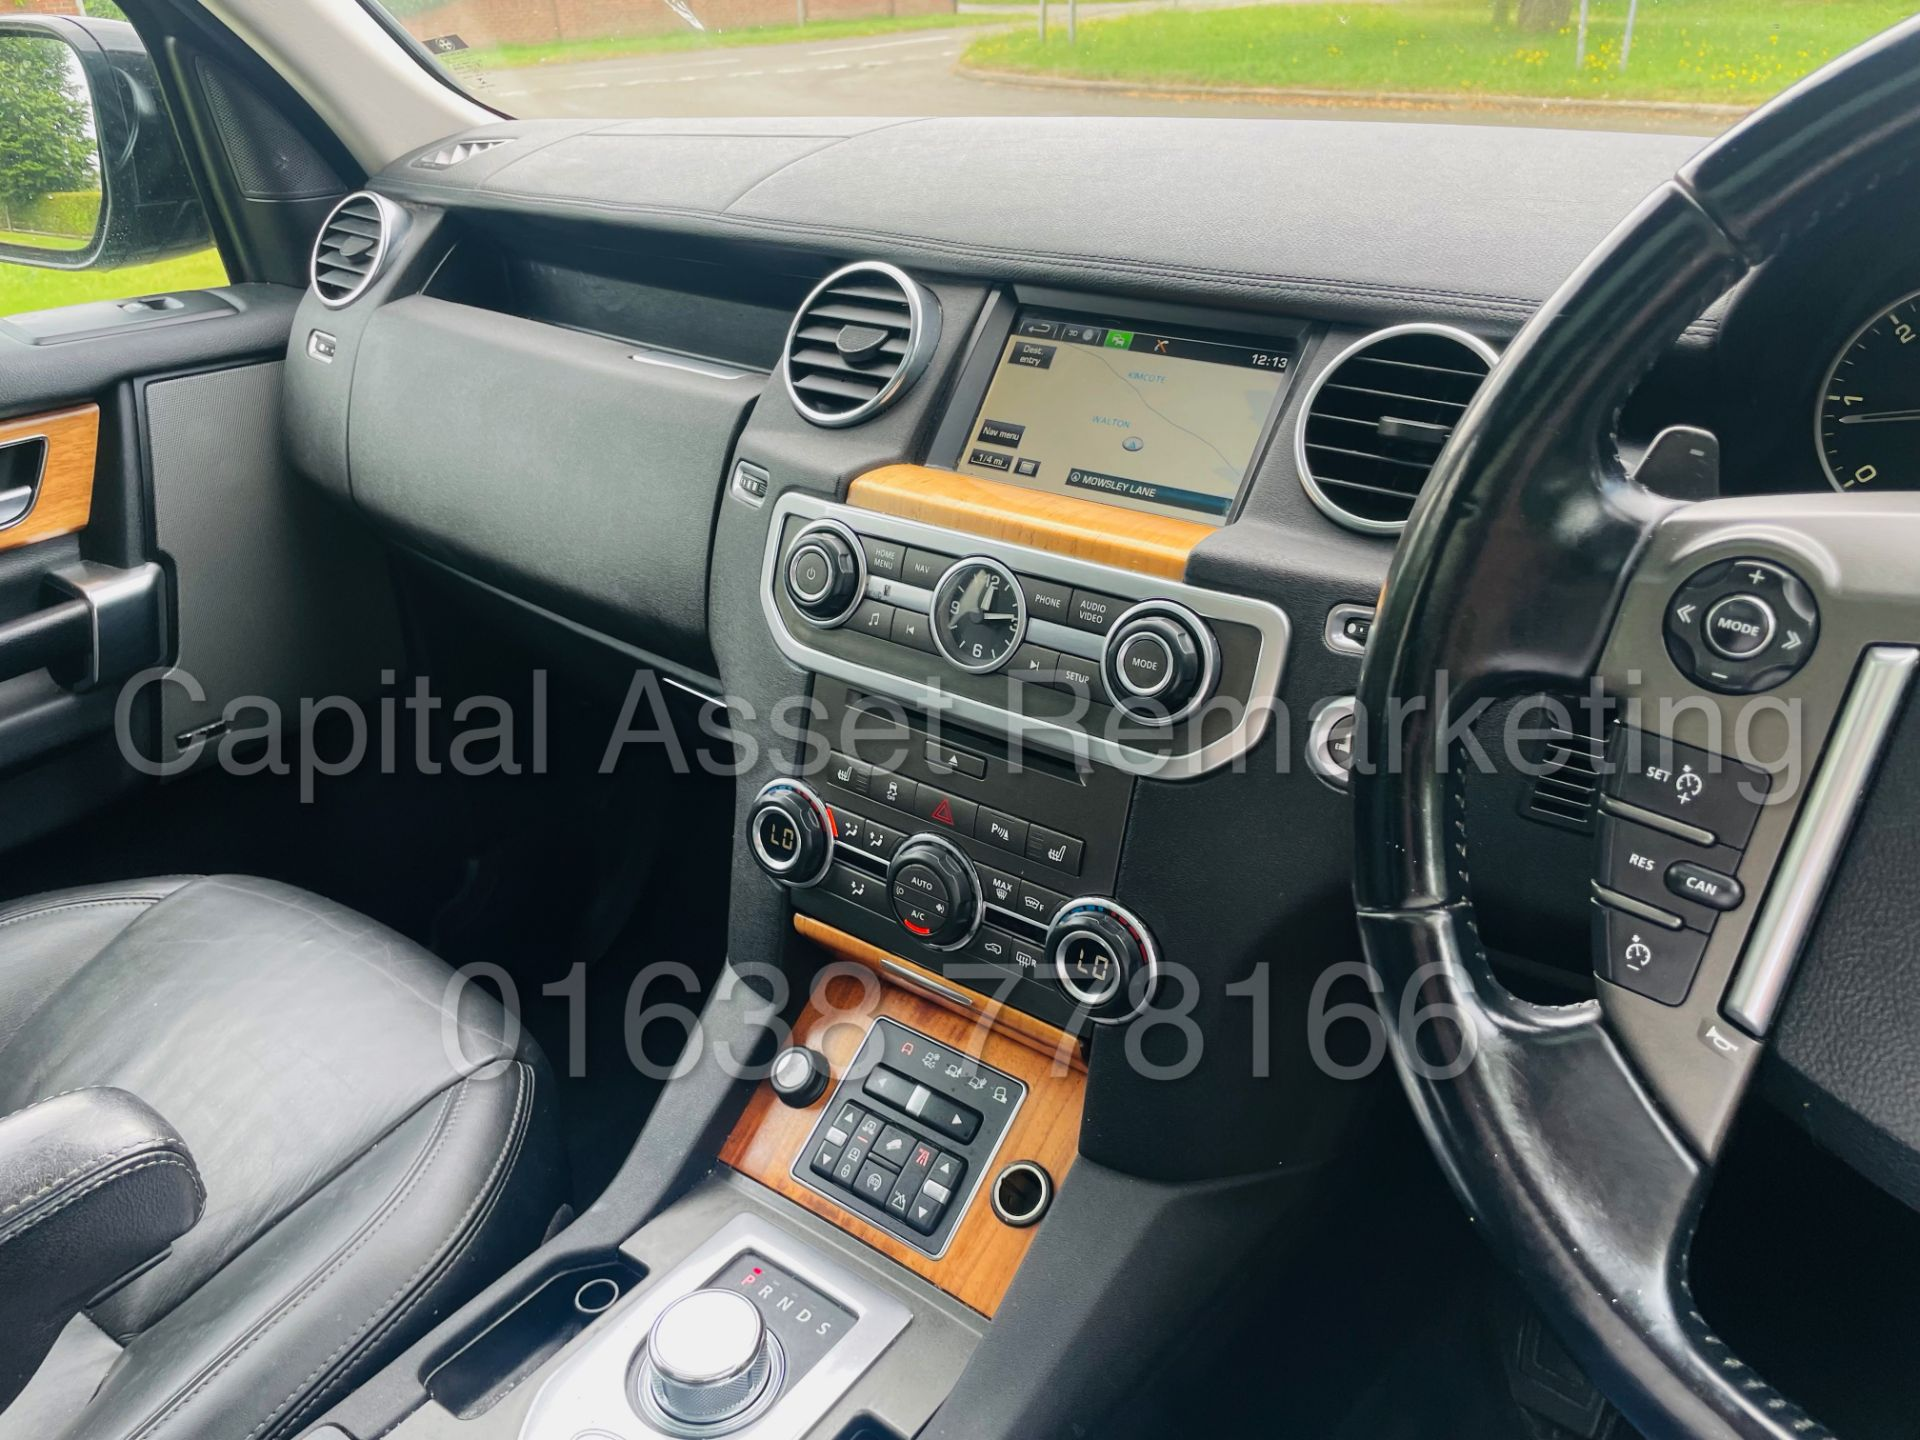 LAND ROVER DISCOVERY 4 *HSE* 7 SEATER SUV (2014 - NEW MODEL) '3.0 SDV6 - 255 BHP - 8 SPEED AUTO' - Image 51 of 61